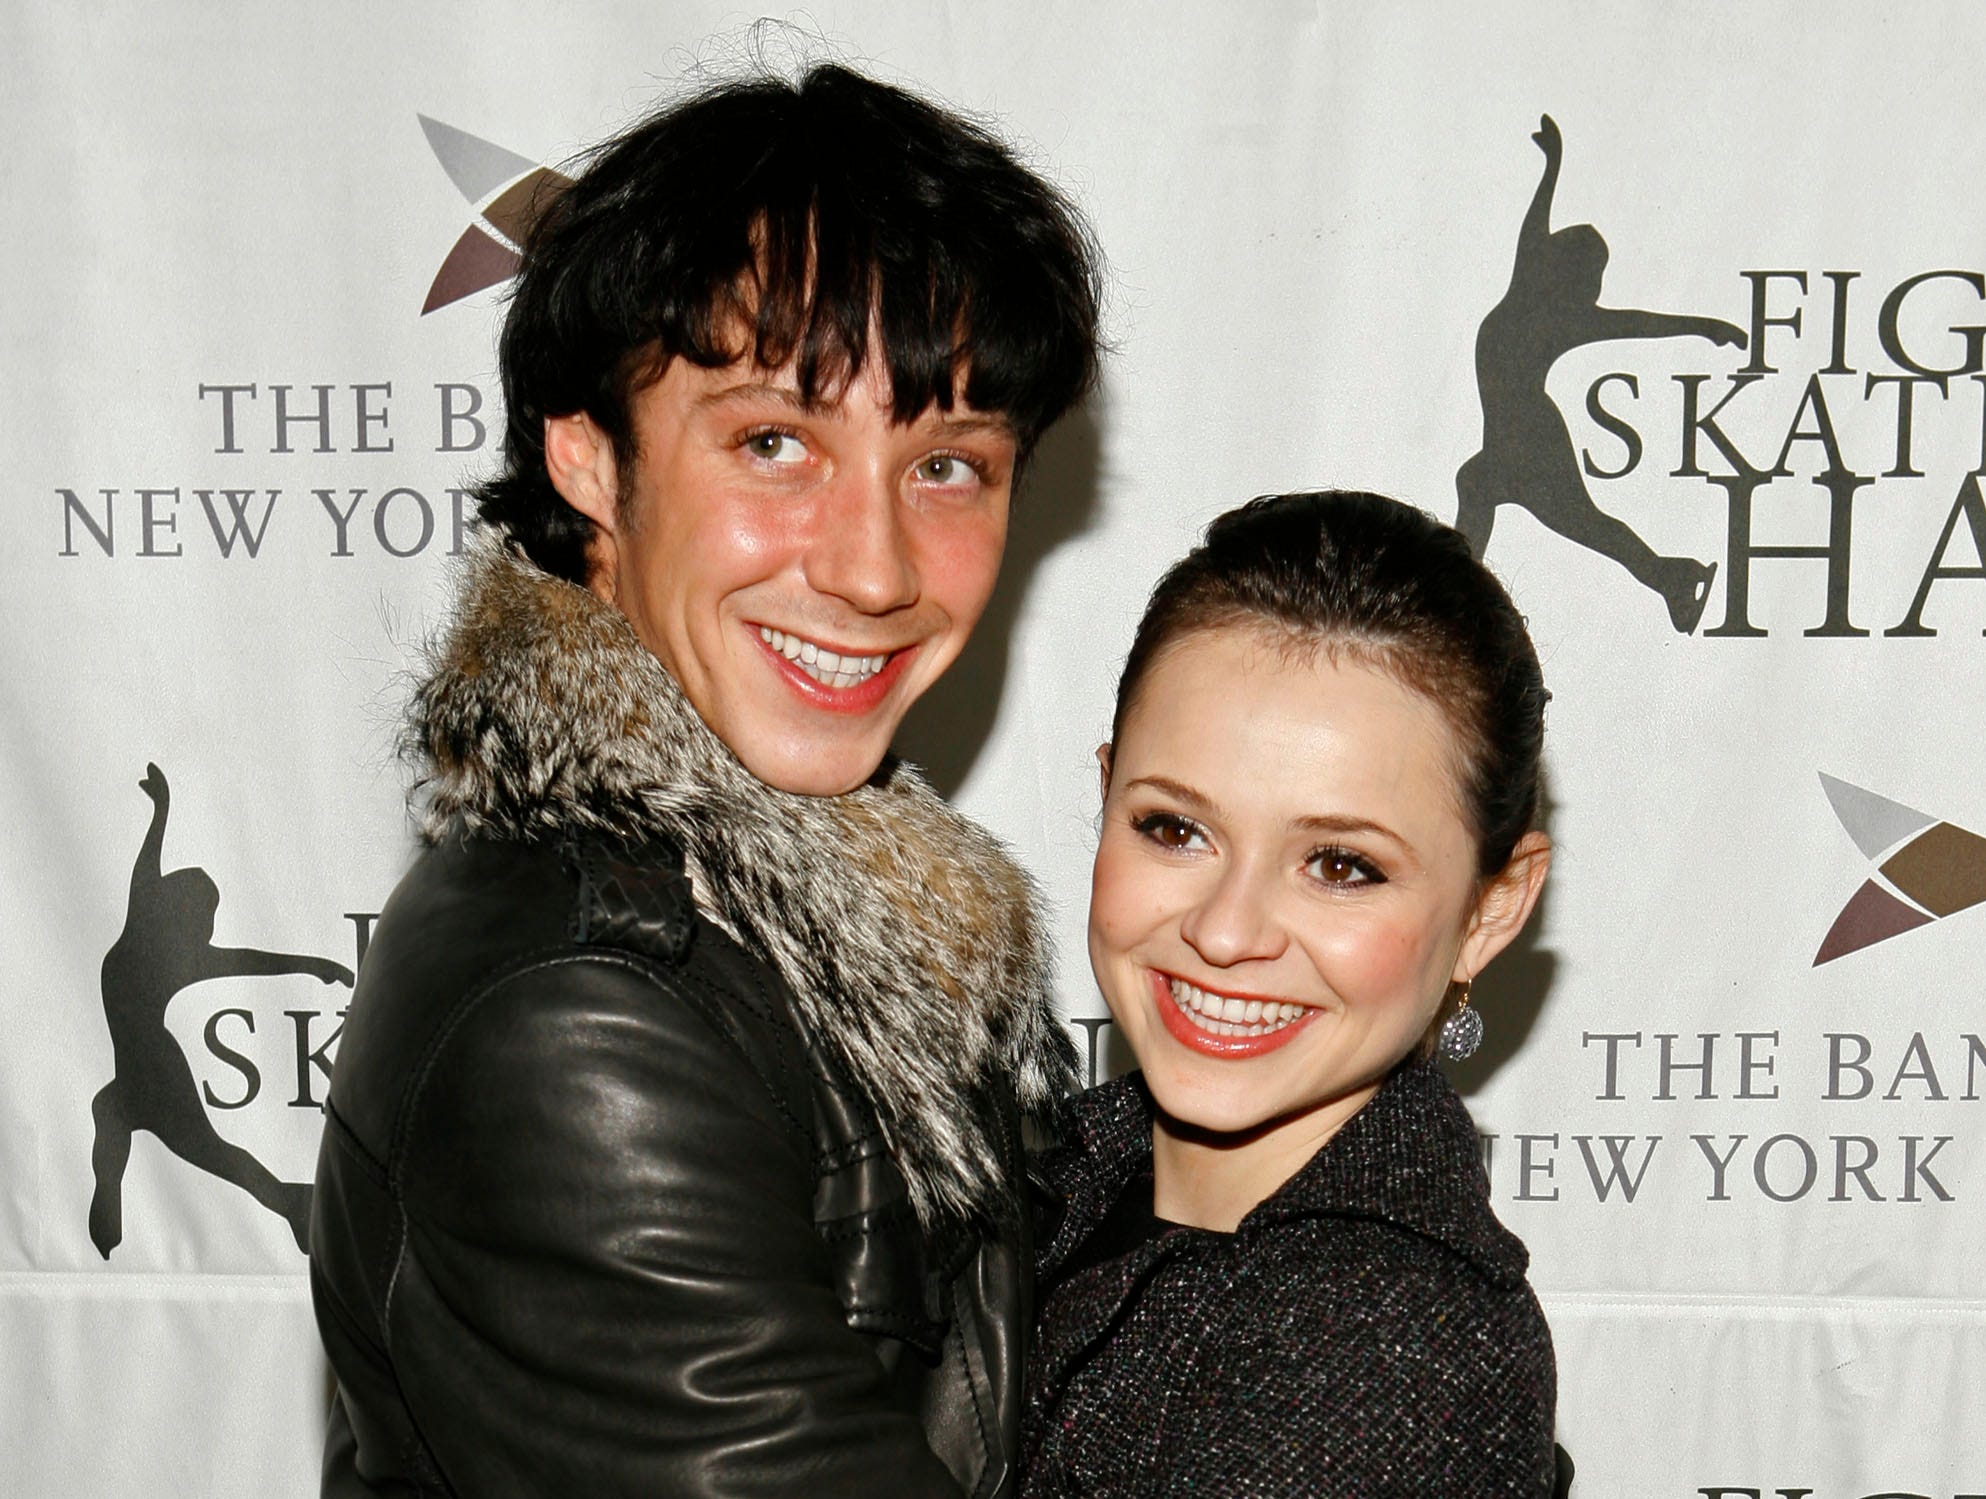 Figure skaters Johnny Weir and Sasha Cohen arrive for a gala benefiting figure skating In Harlem at Central Park's Wollman Rink Monday, March 31, 2008 in New York.